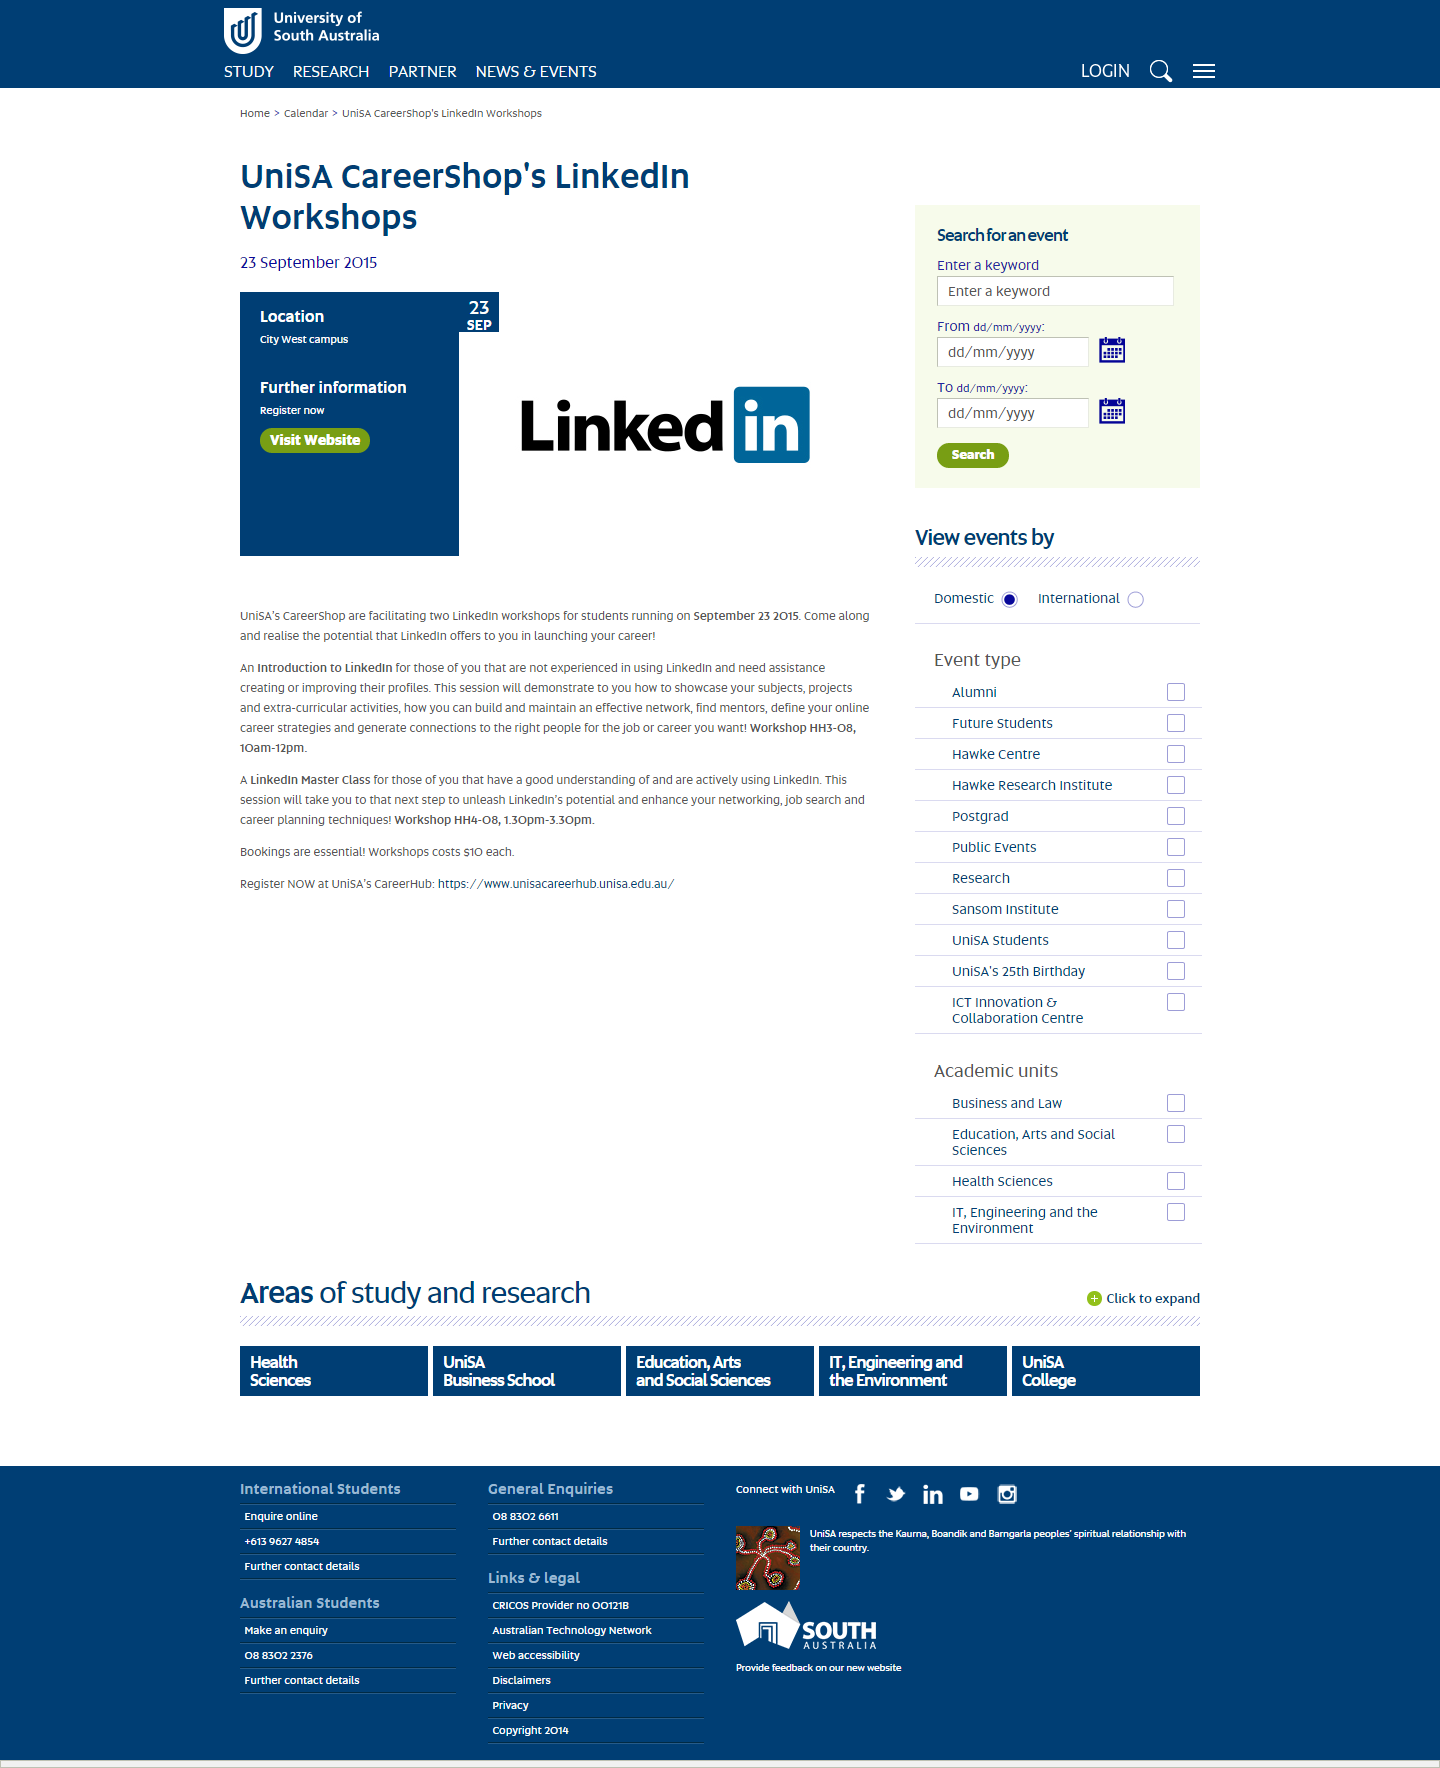 University of South Australia LinkedIn Workshops